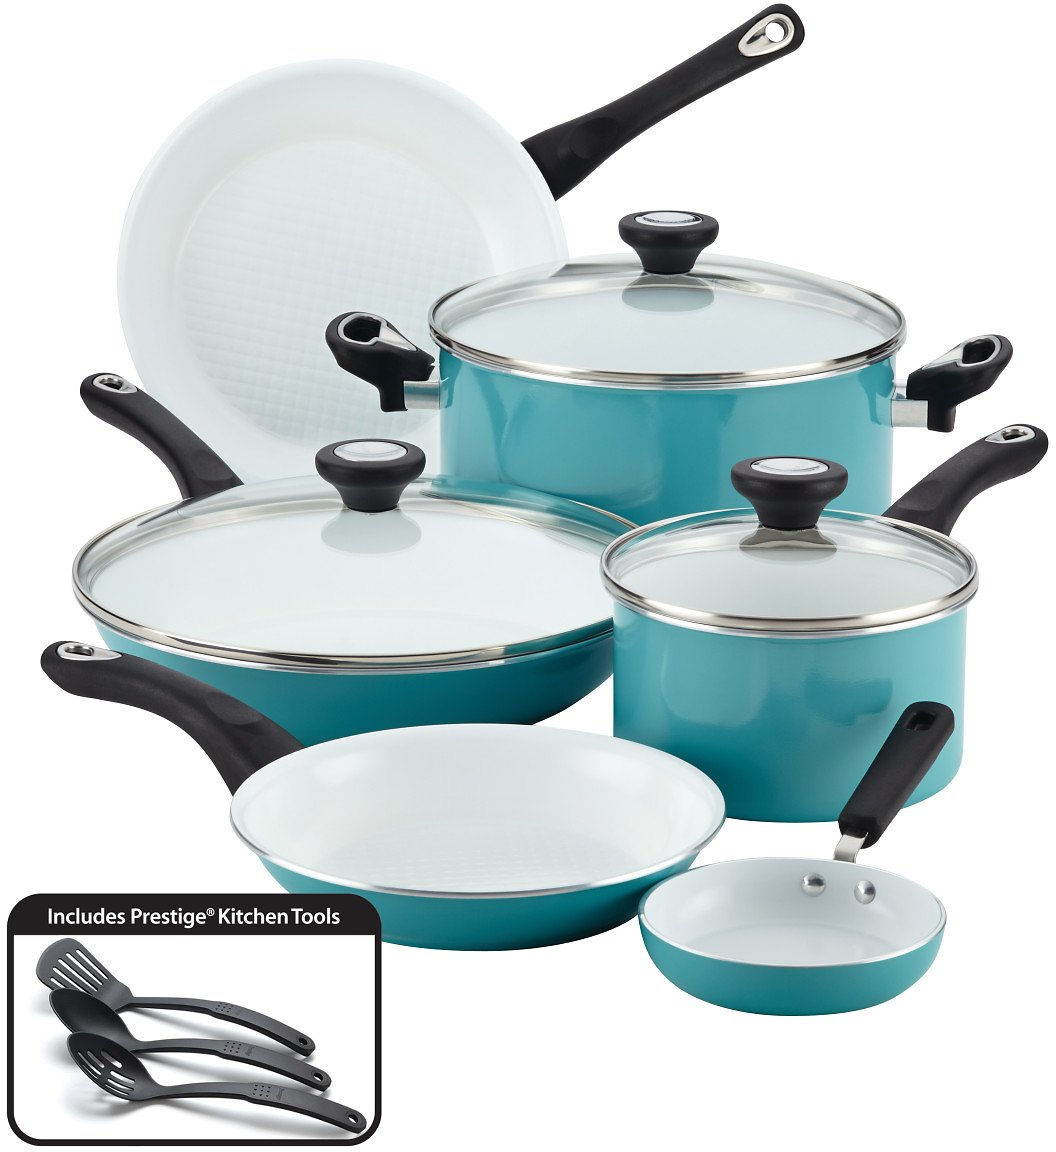 Farberware 12-Piece PURECOOK™ Ceramic Nonstick Cookware Set - Aqua